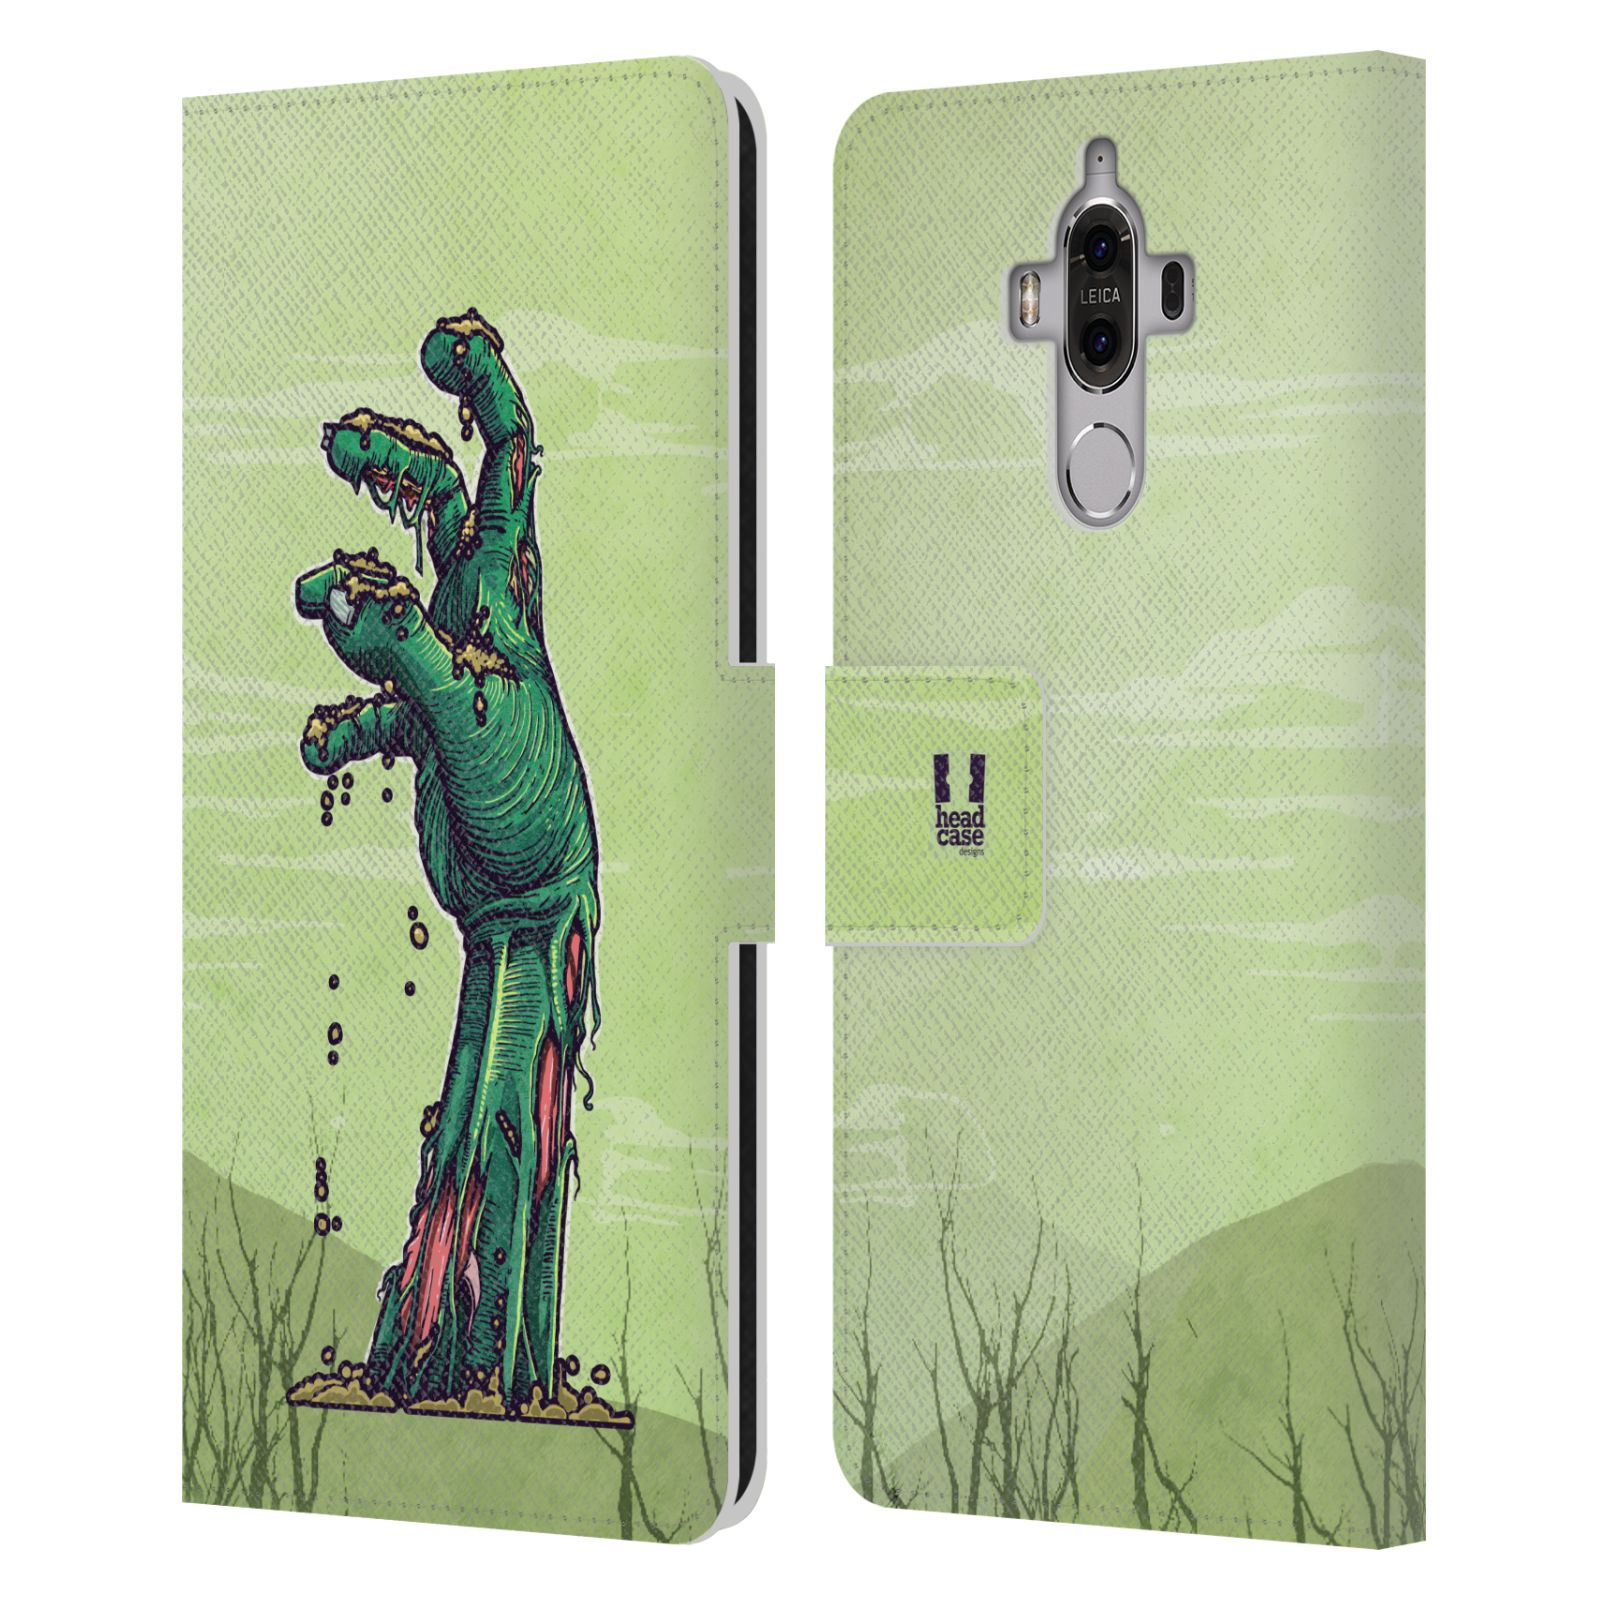 HEAD-CASE-DESIGNS-ZOMBIES-LEATHER-BOOK-WALLET-CASE-COVER-FOR-HUAWEI-MATE-9